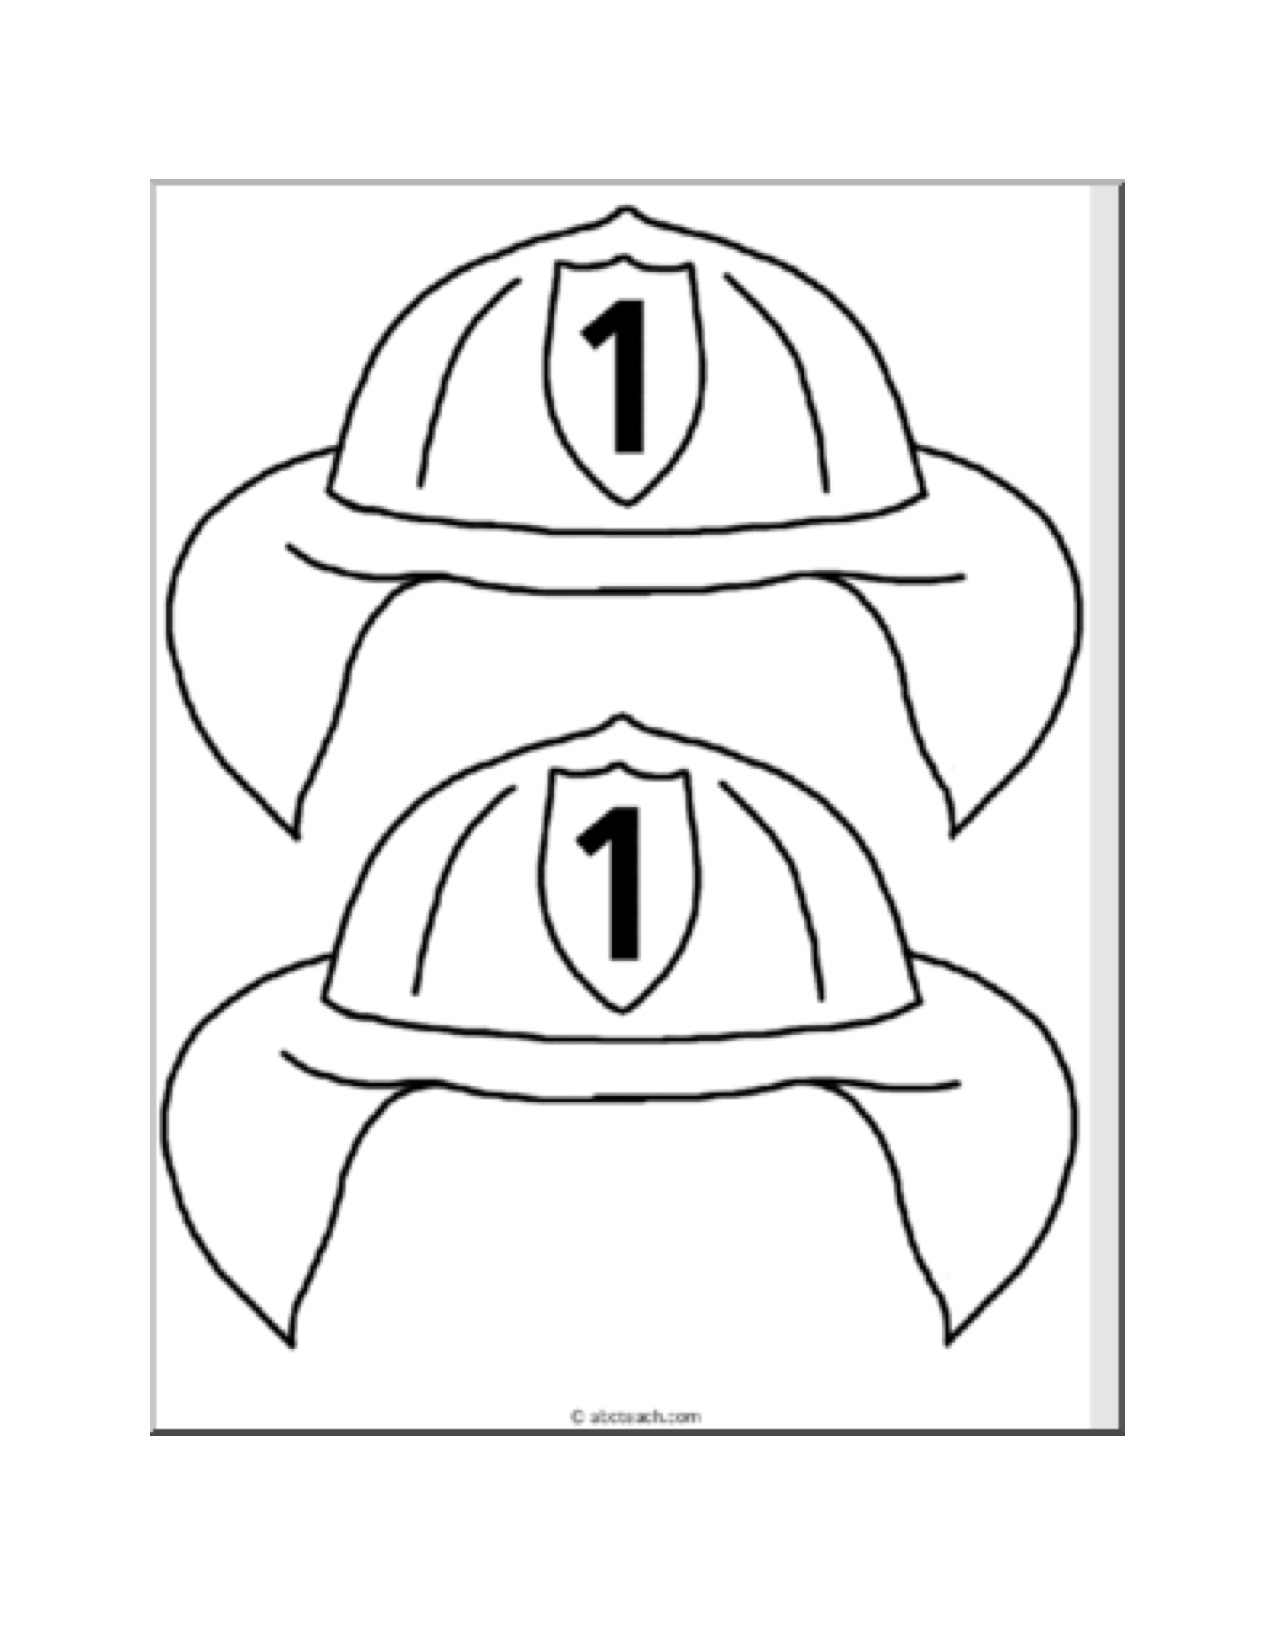 Fireman Hat Template http://dbsenk.wordpress.com/2011/09/13/fire-safety/